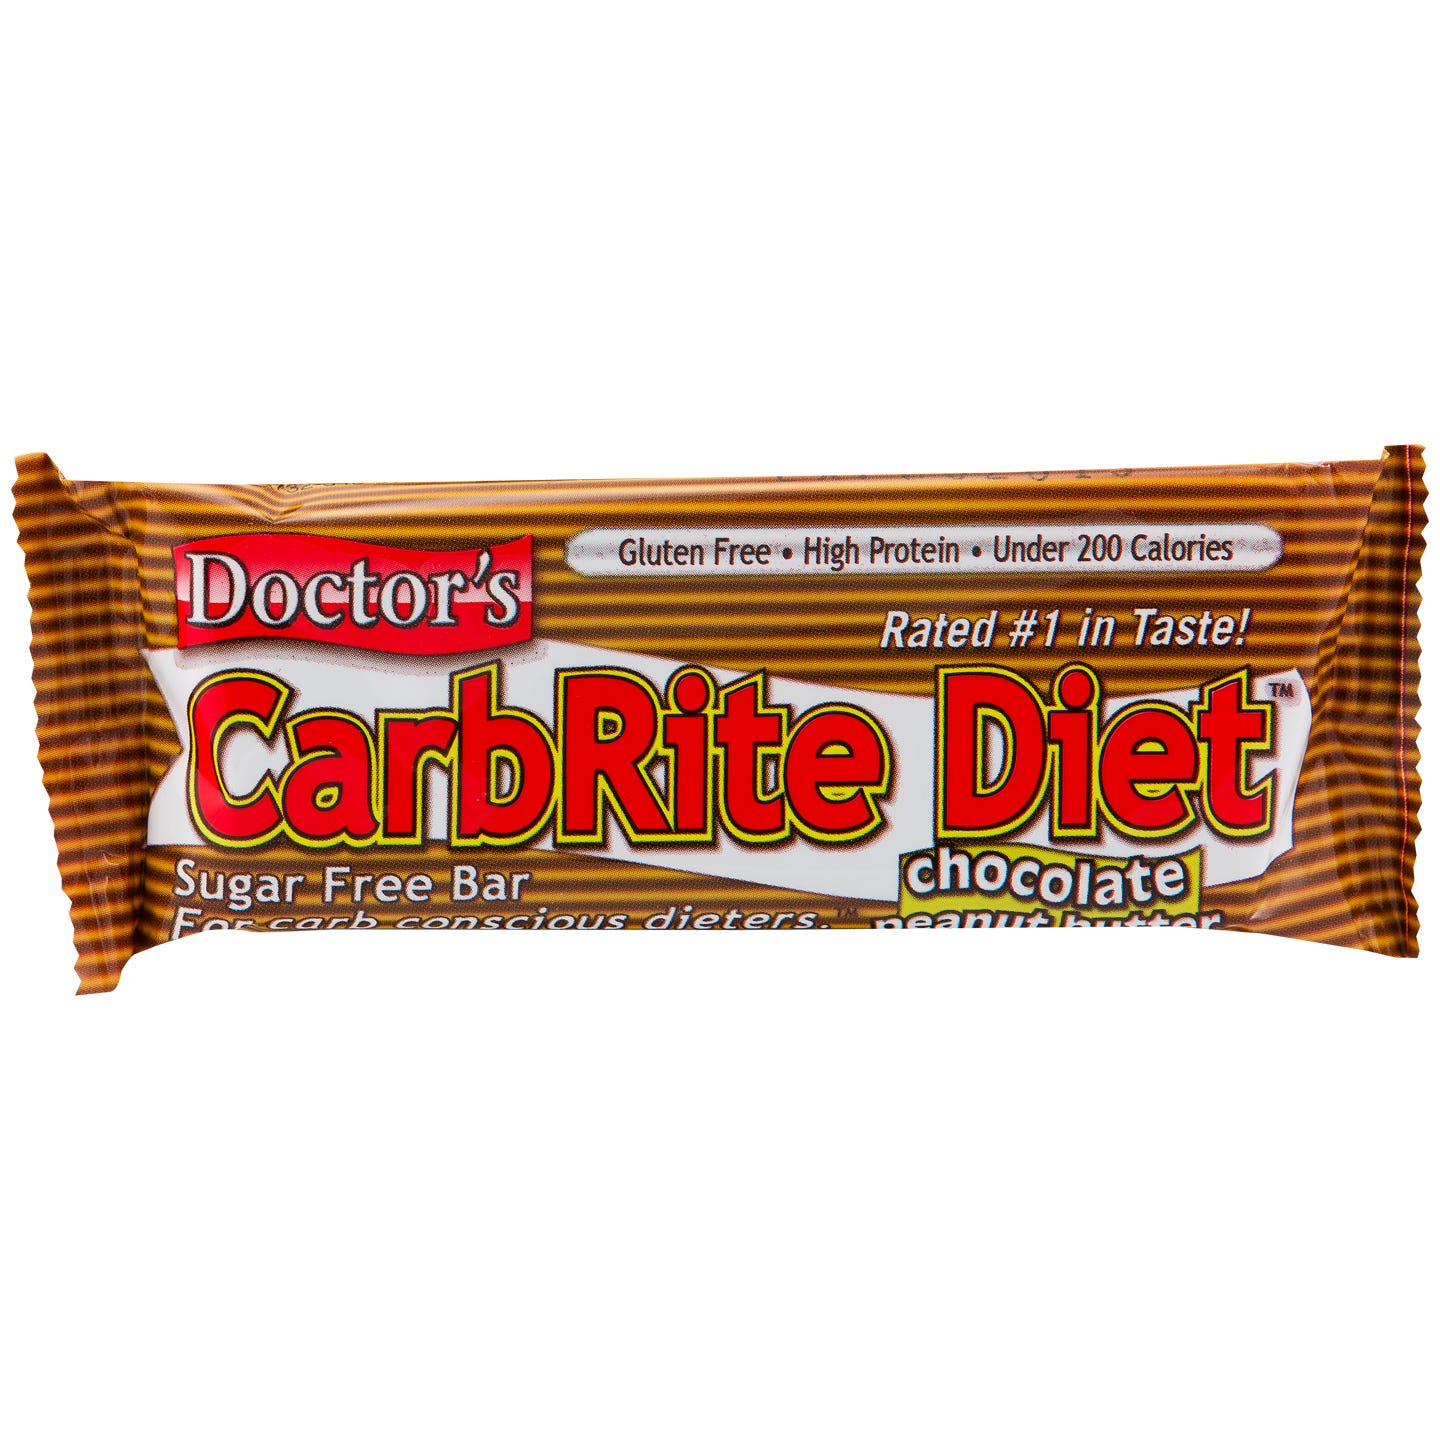 Doctor's CarbRite Diet Protein Bars - Chocolate Peanut Butter